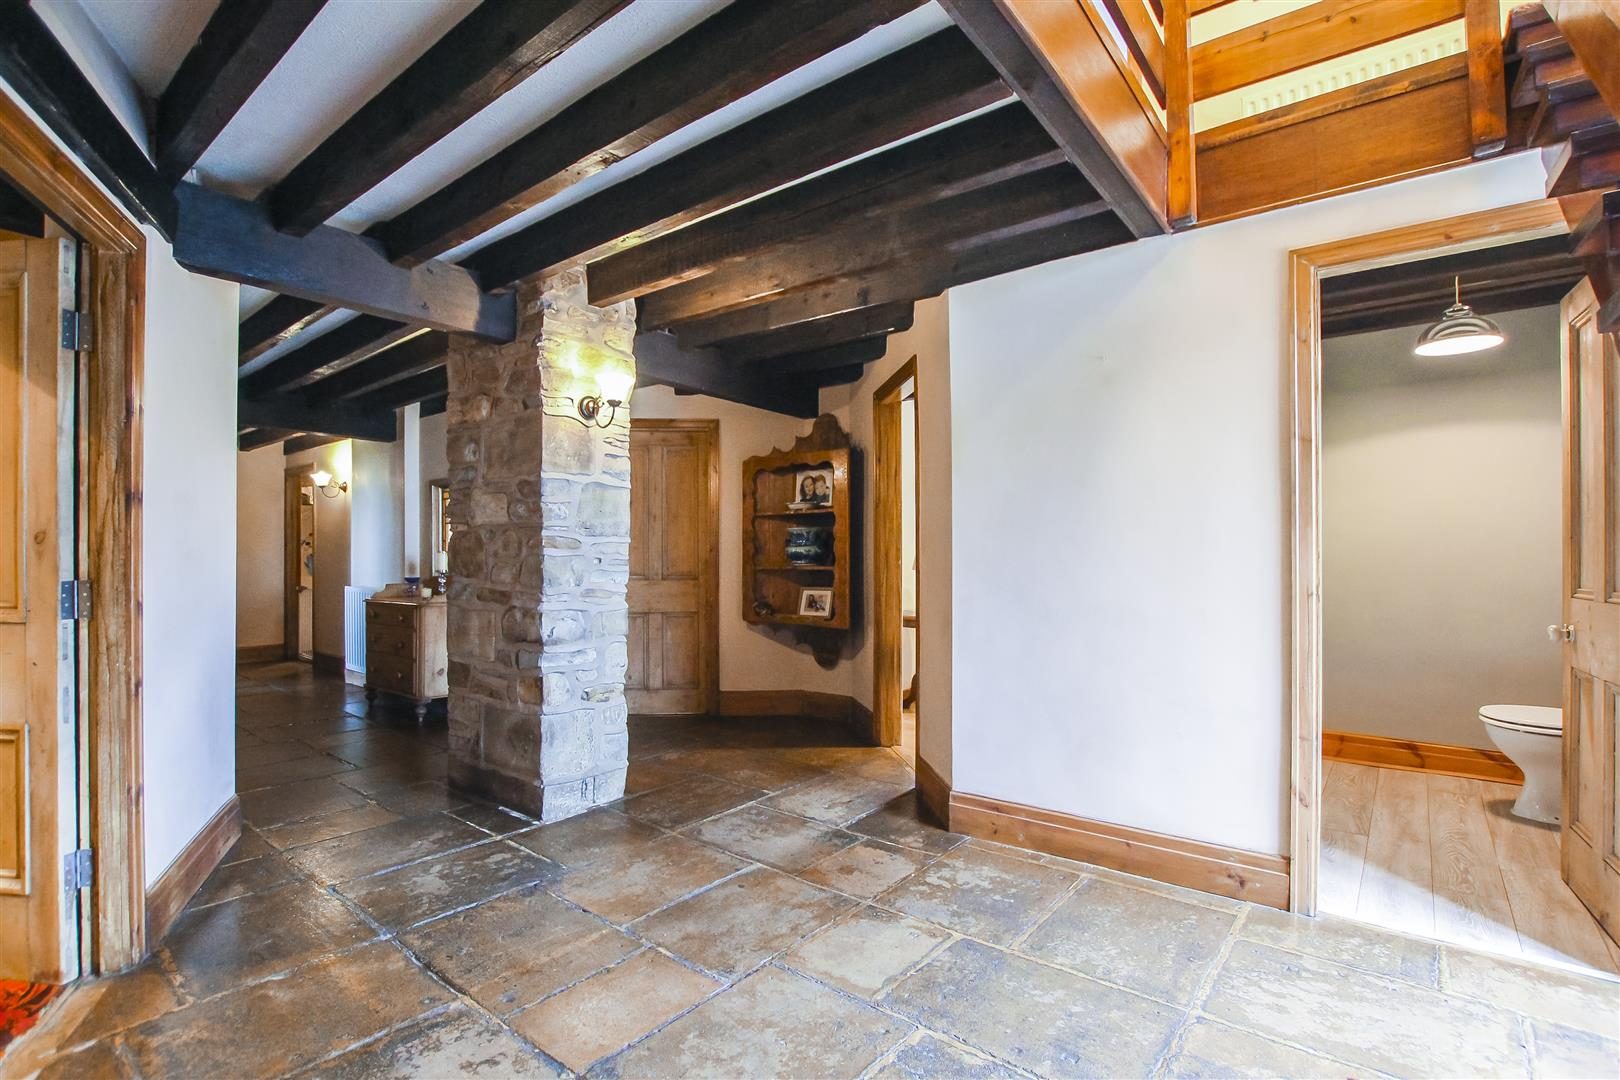 5 Bedroom Barn Conversion For Sale - Image 14